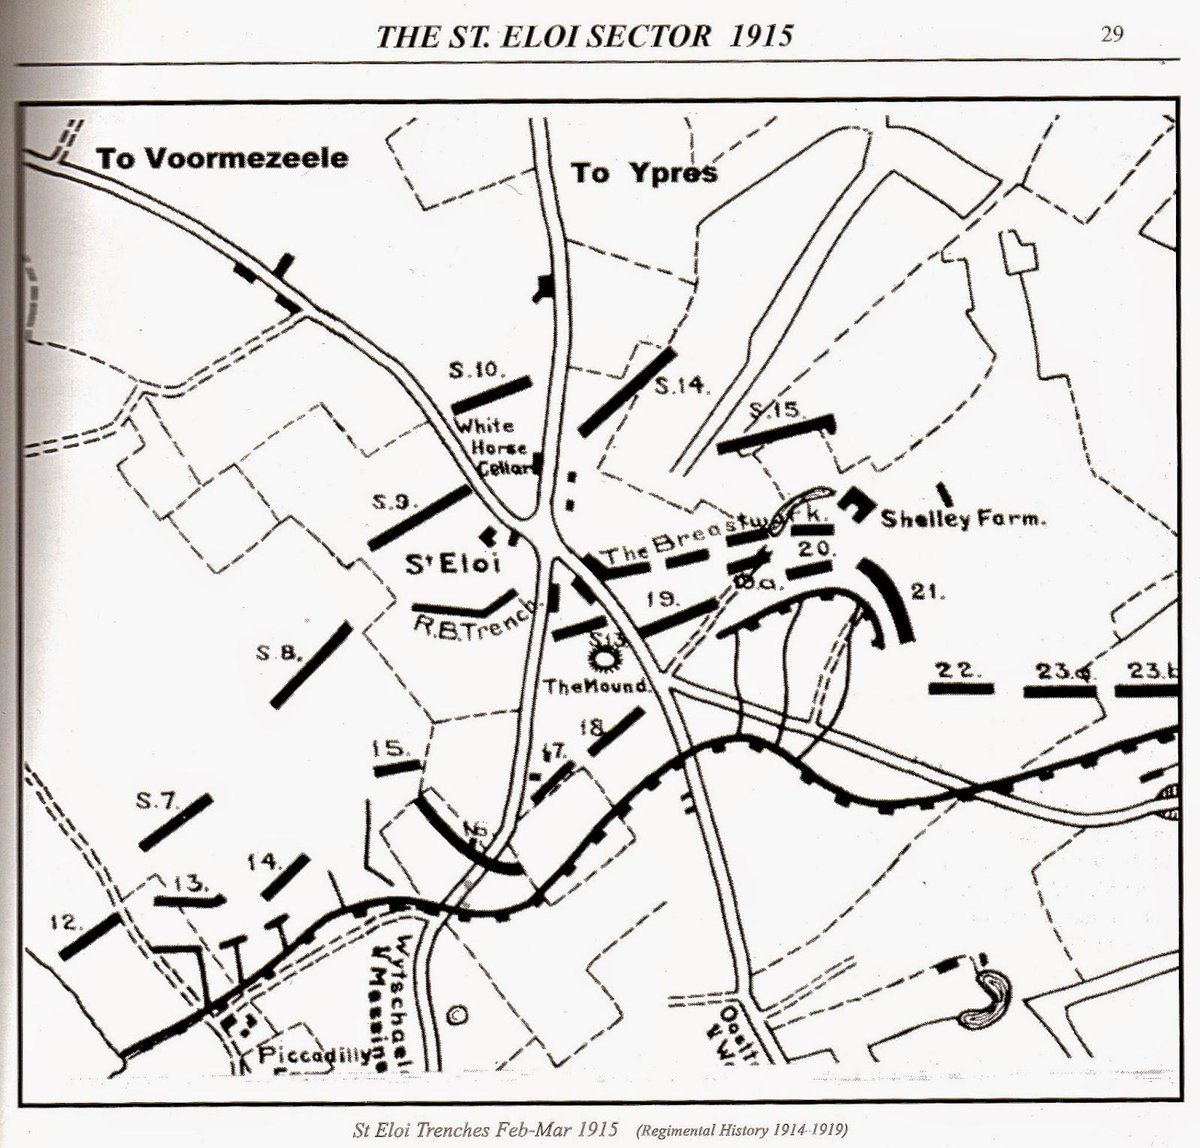 Wwi Covered Live On Twitter Mar 19 1915 Ppcli Agar Adamson Trench Diagram Ordered To 21 Most Dangerous In Ypres Salient Http Tco Ffnbaoltgl